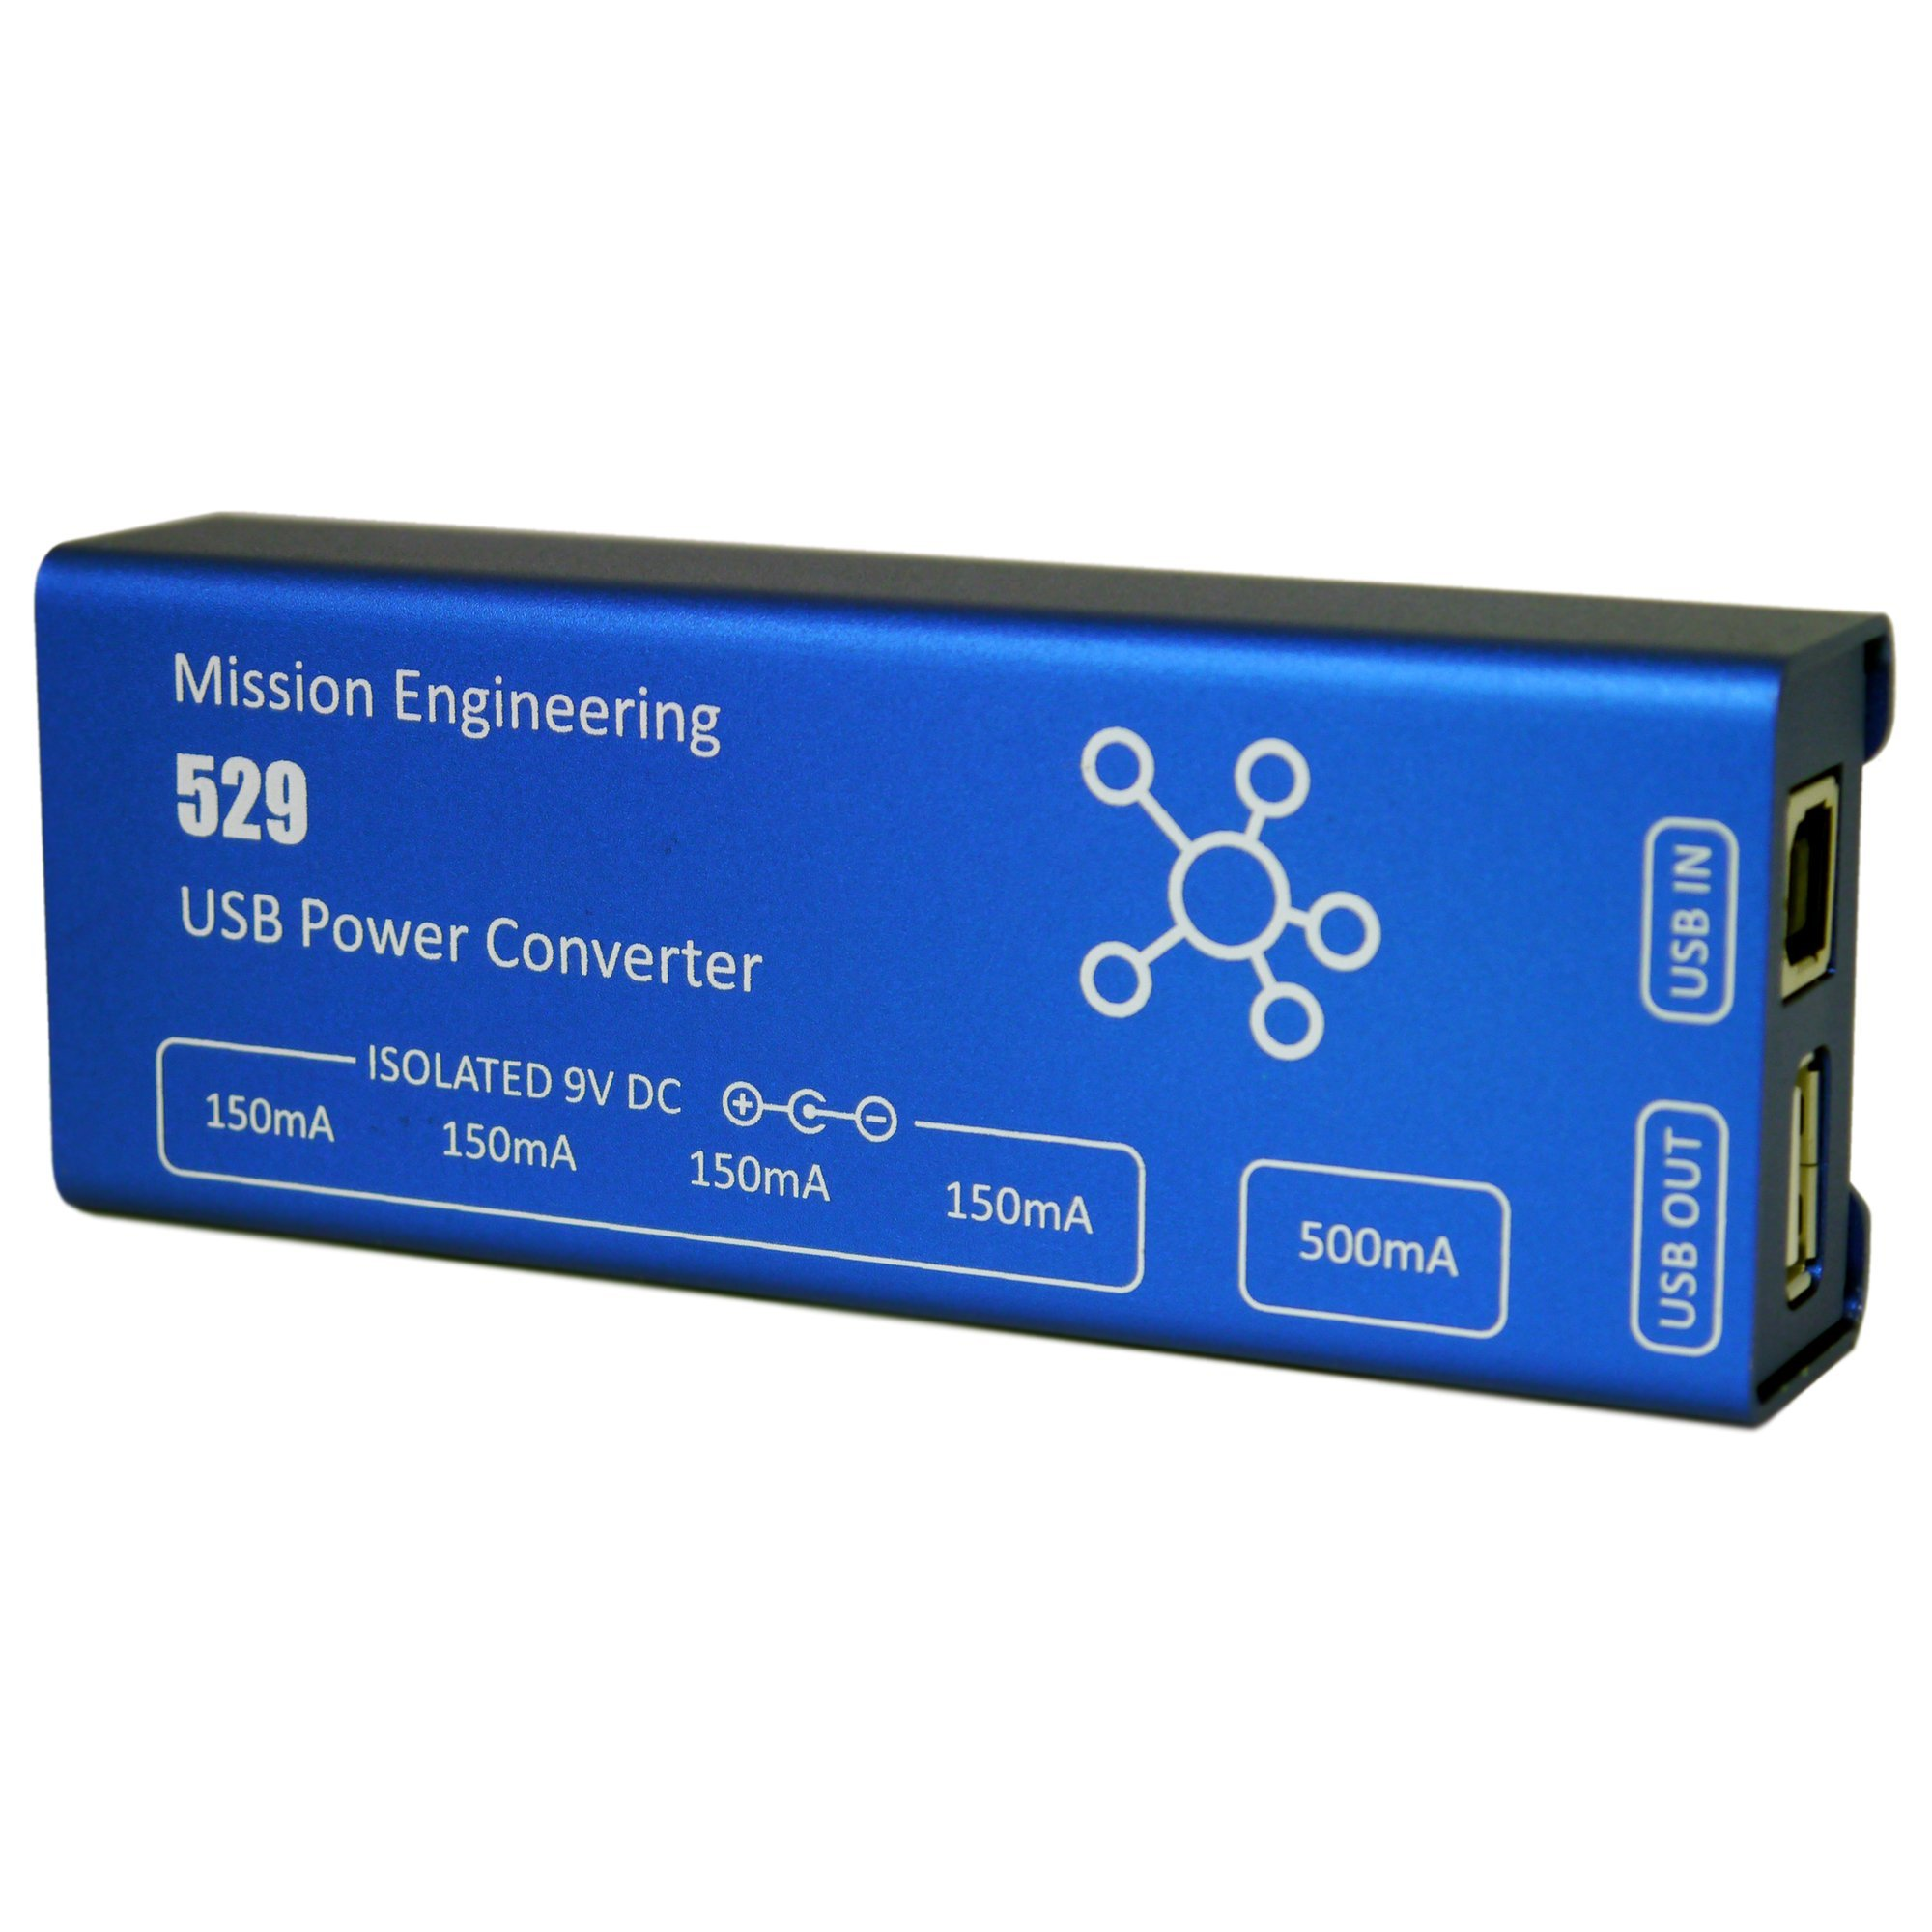 Mission Engineering Power 529 USB Pedal Power Converter